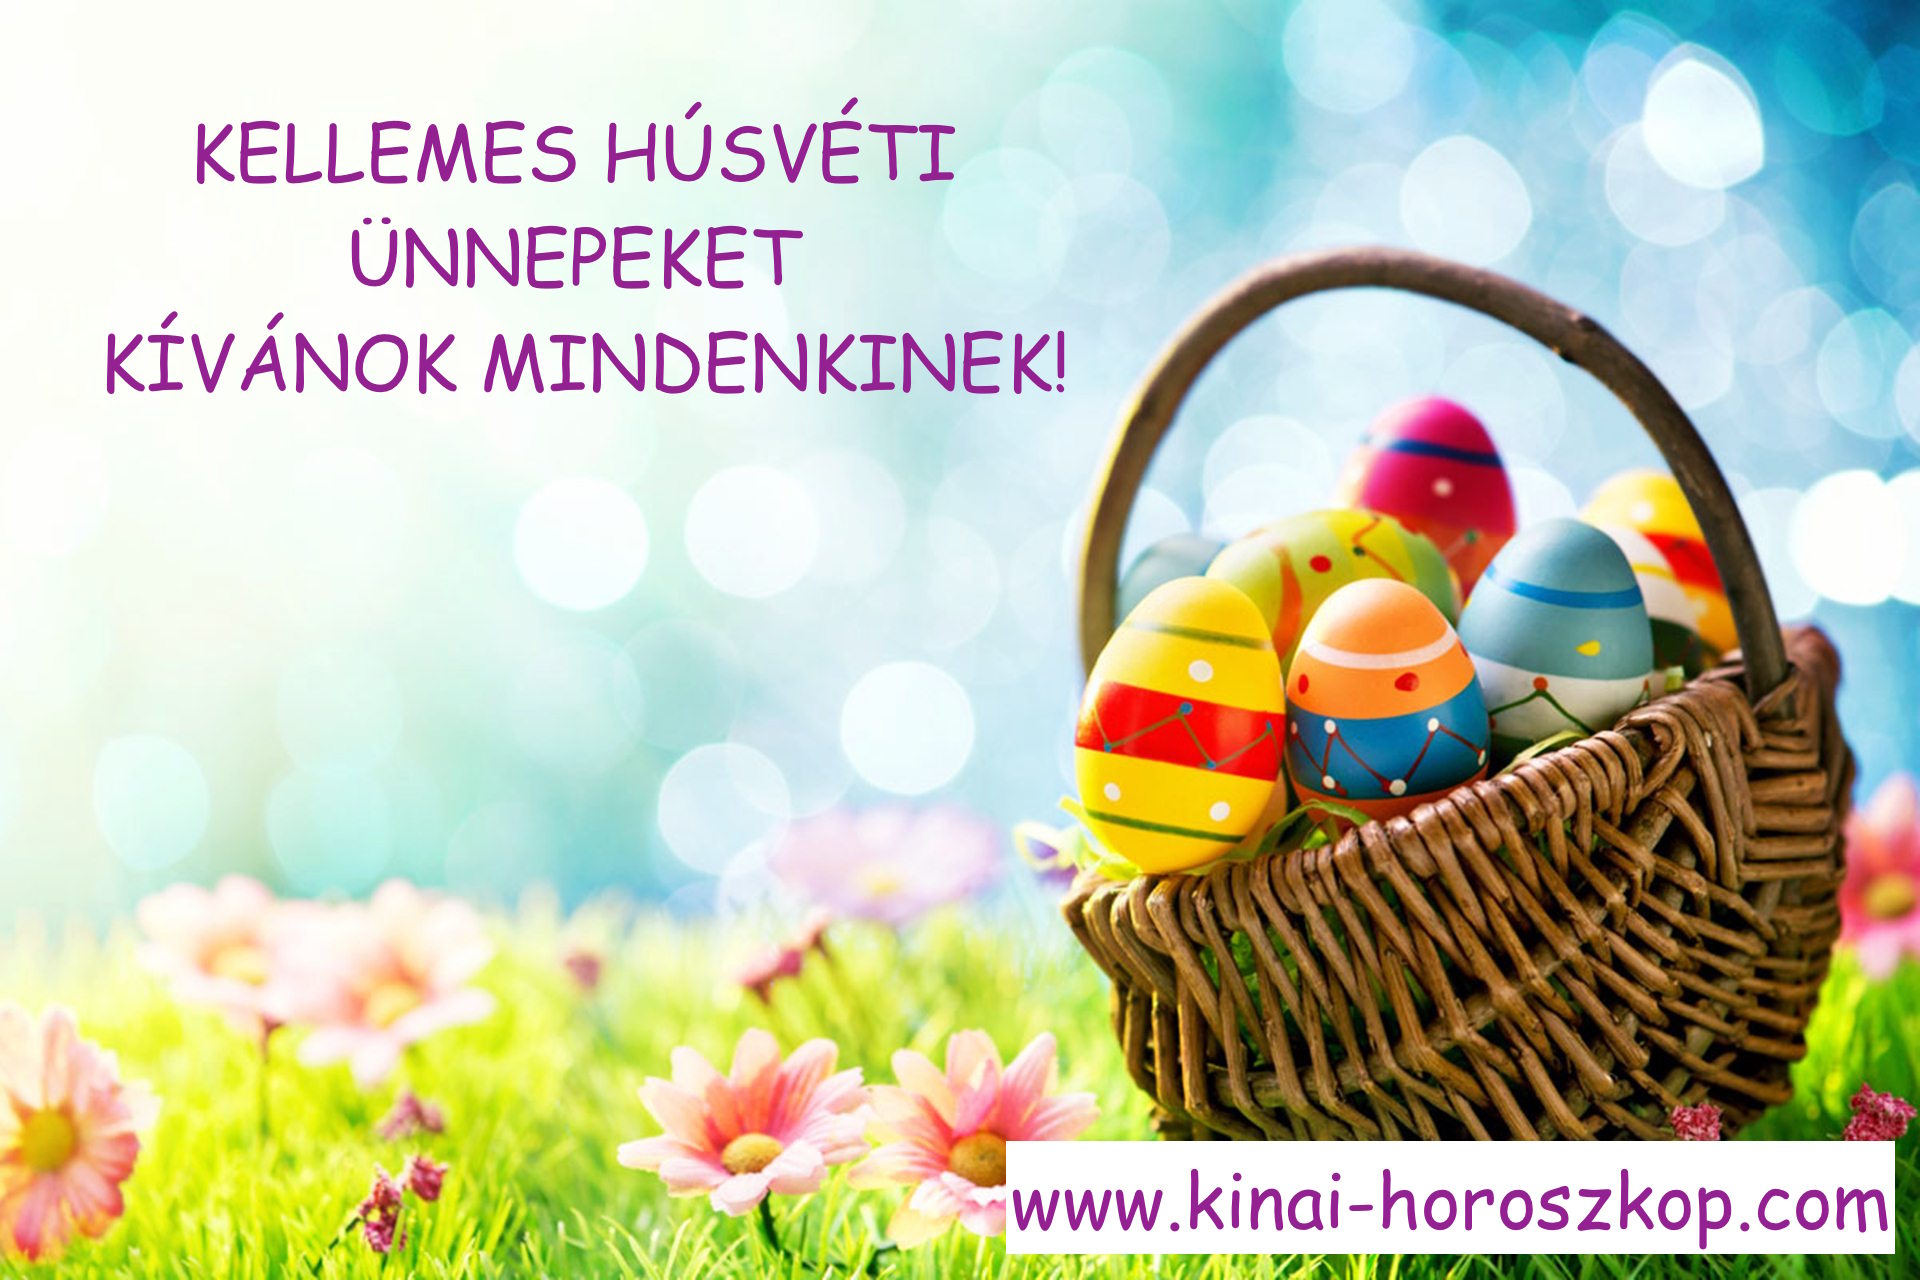 easter-basket-wallpaper-40396-41339-hd-wallpapers